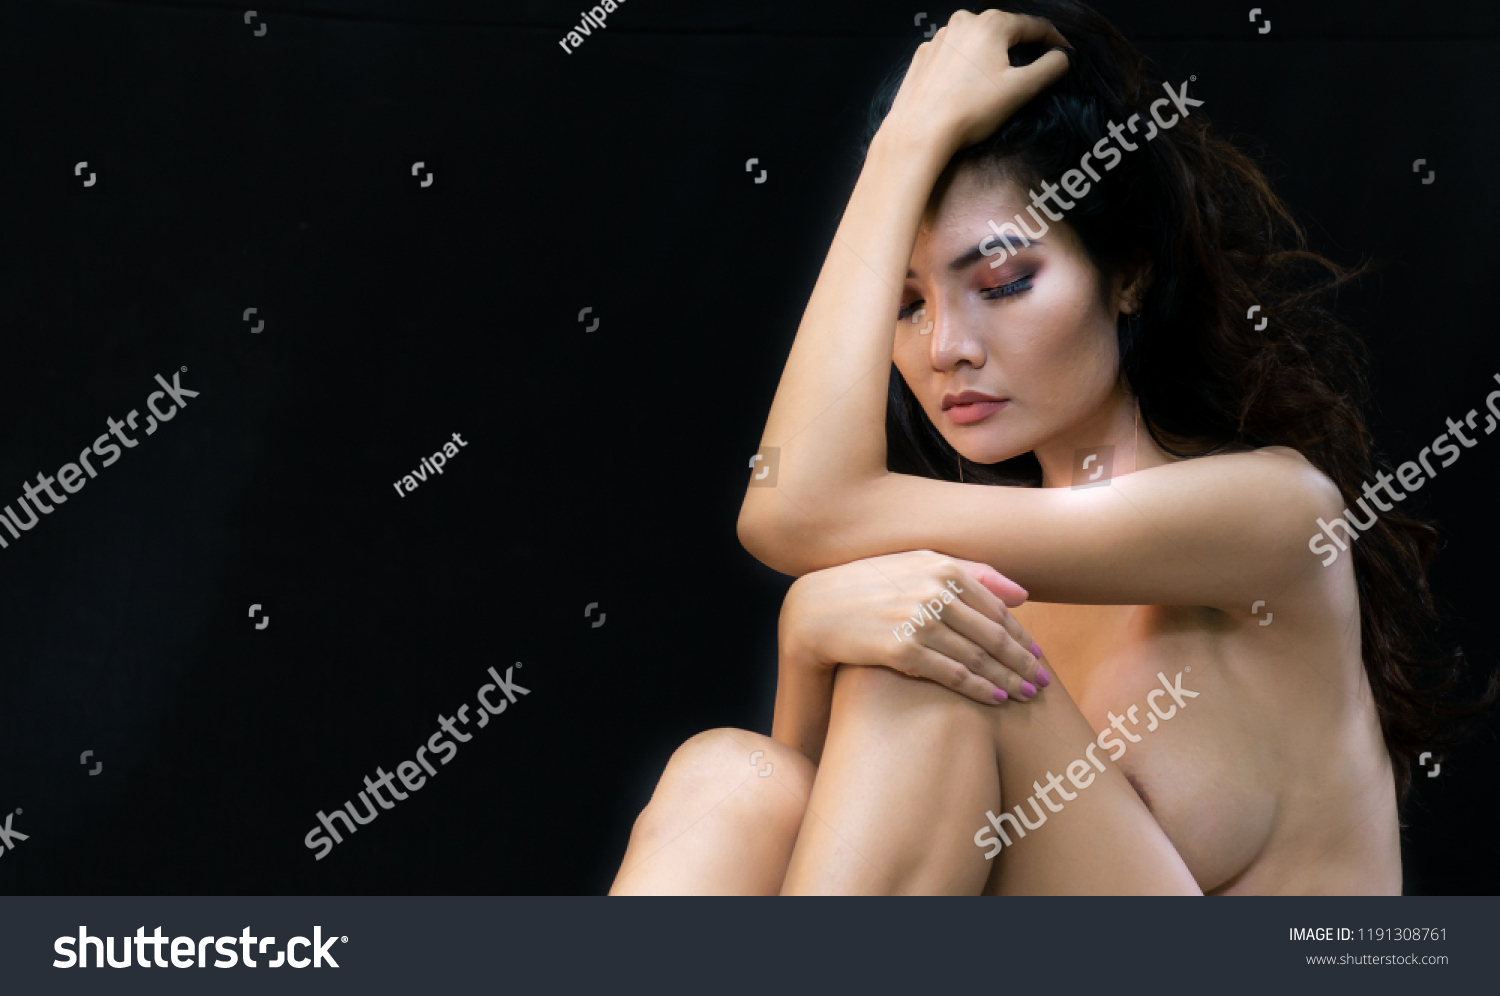 Theme nude art model sitting